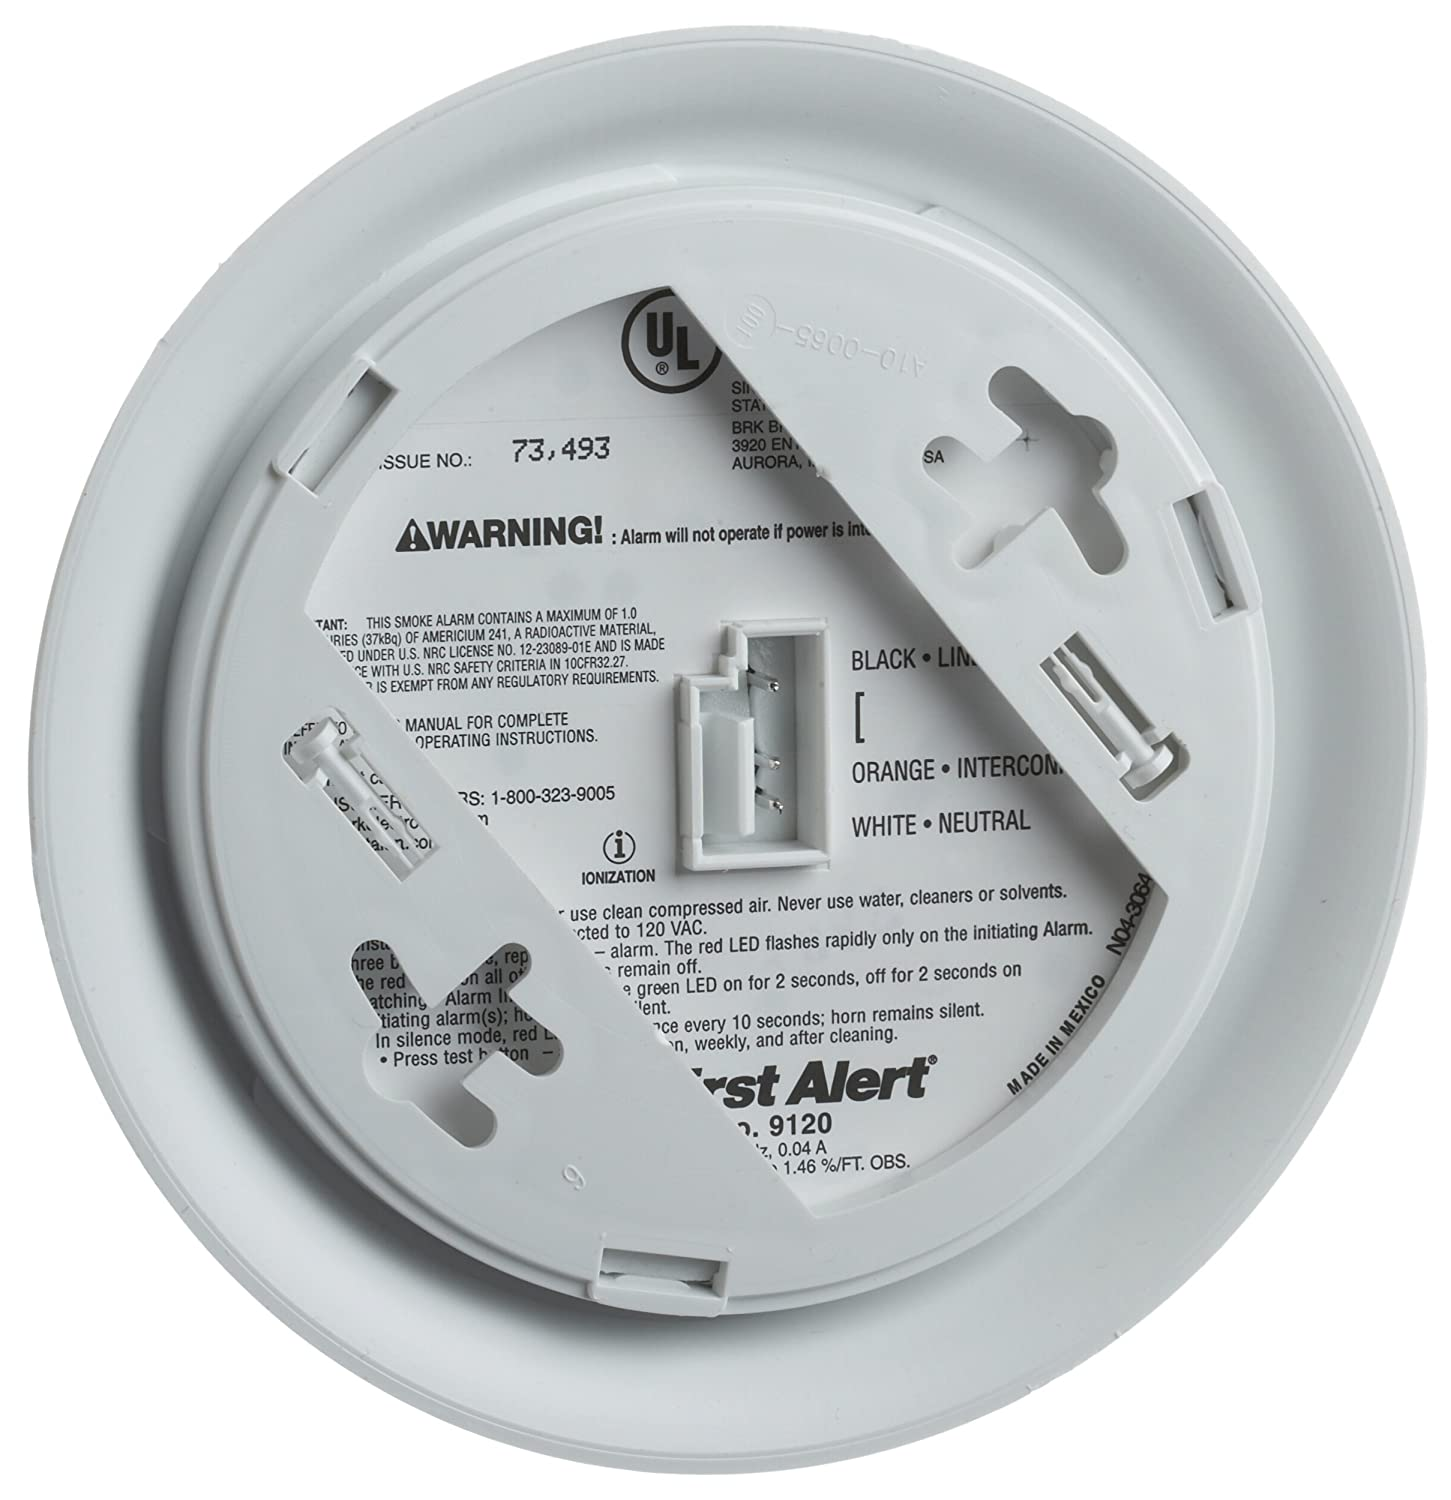 First Alert BRK 9120 Hardwired Smoke Alarm